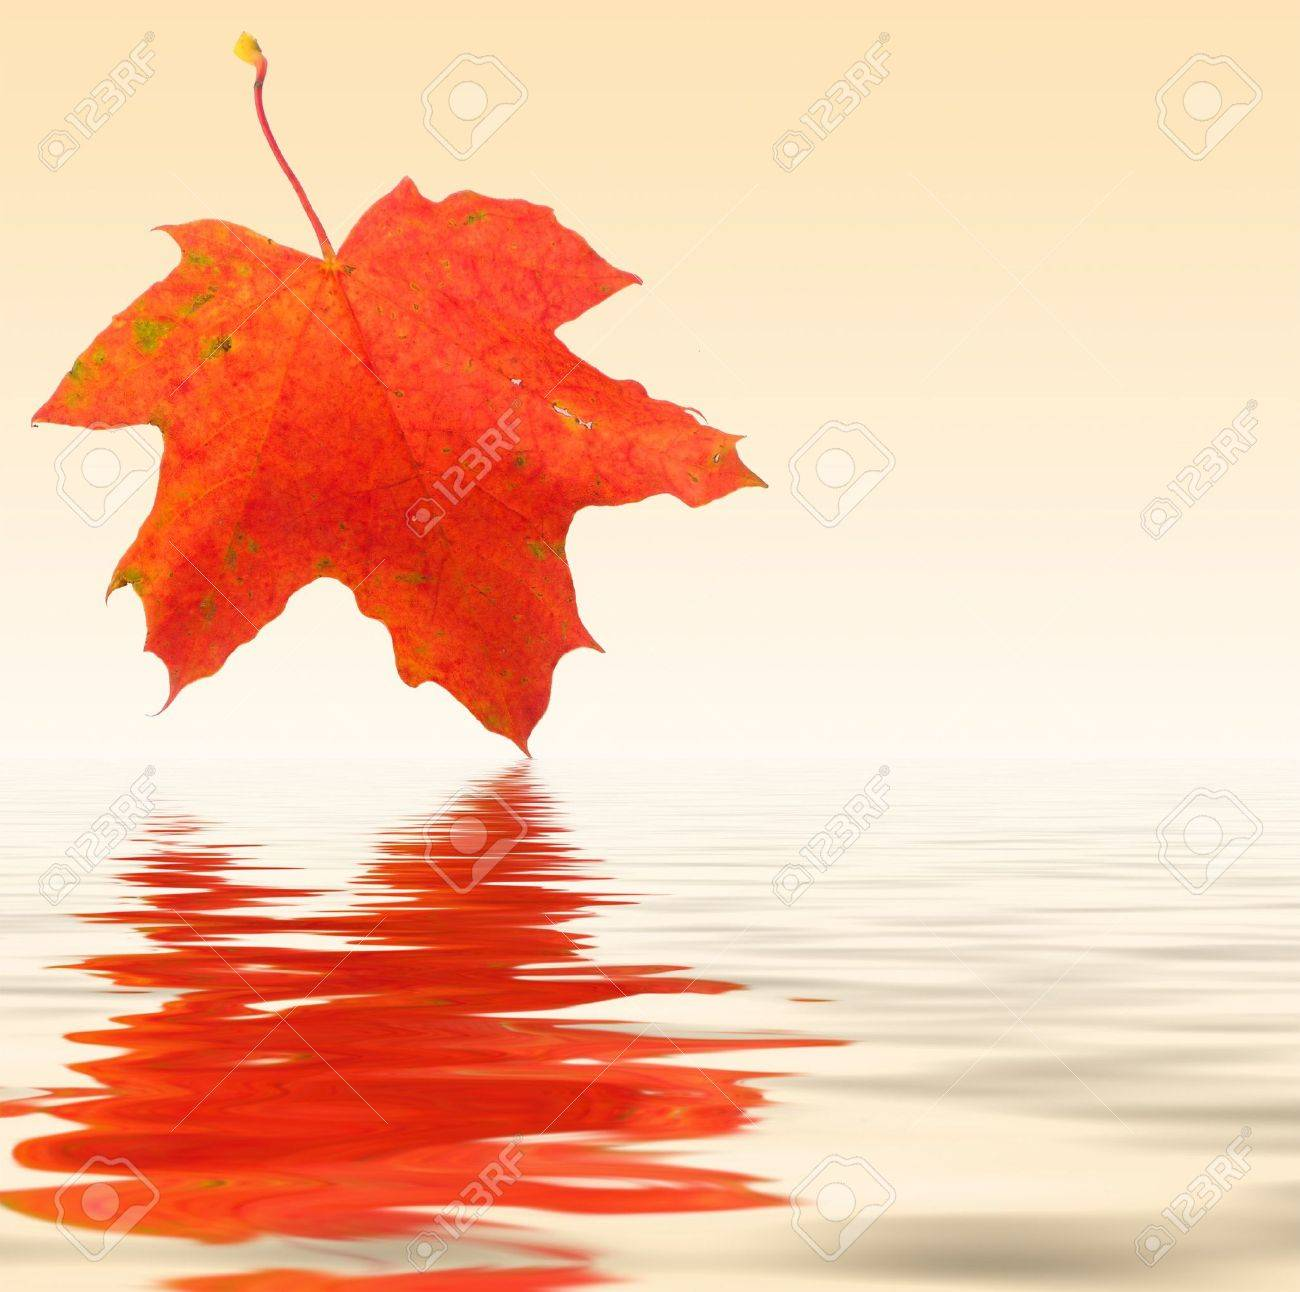 Red maple leaf is mirroring in the water - autumn background Stock Photo - 1989856